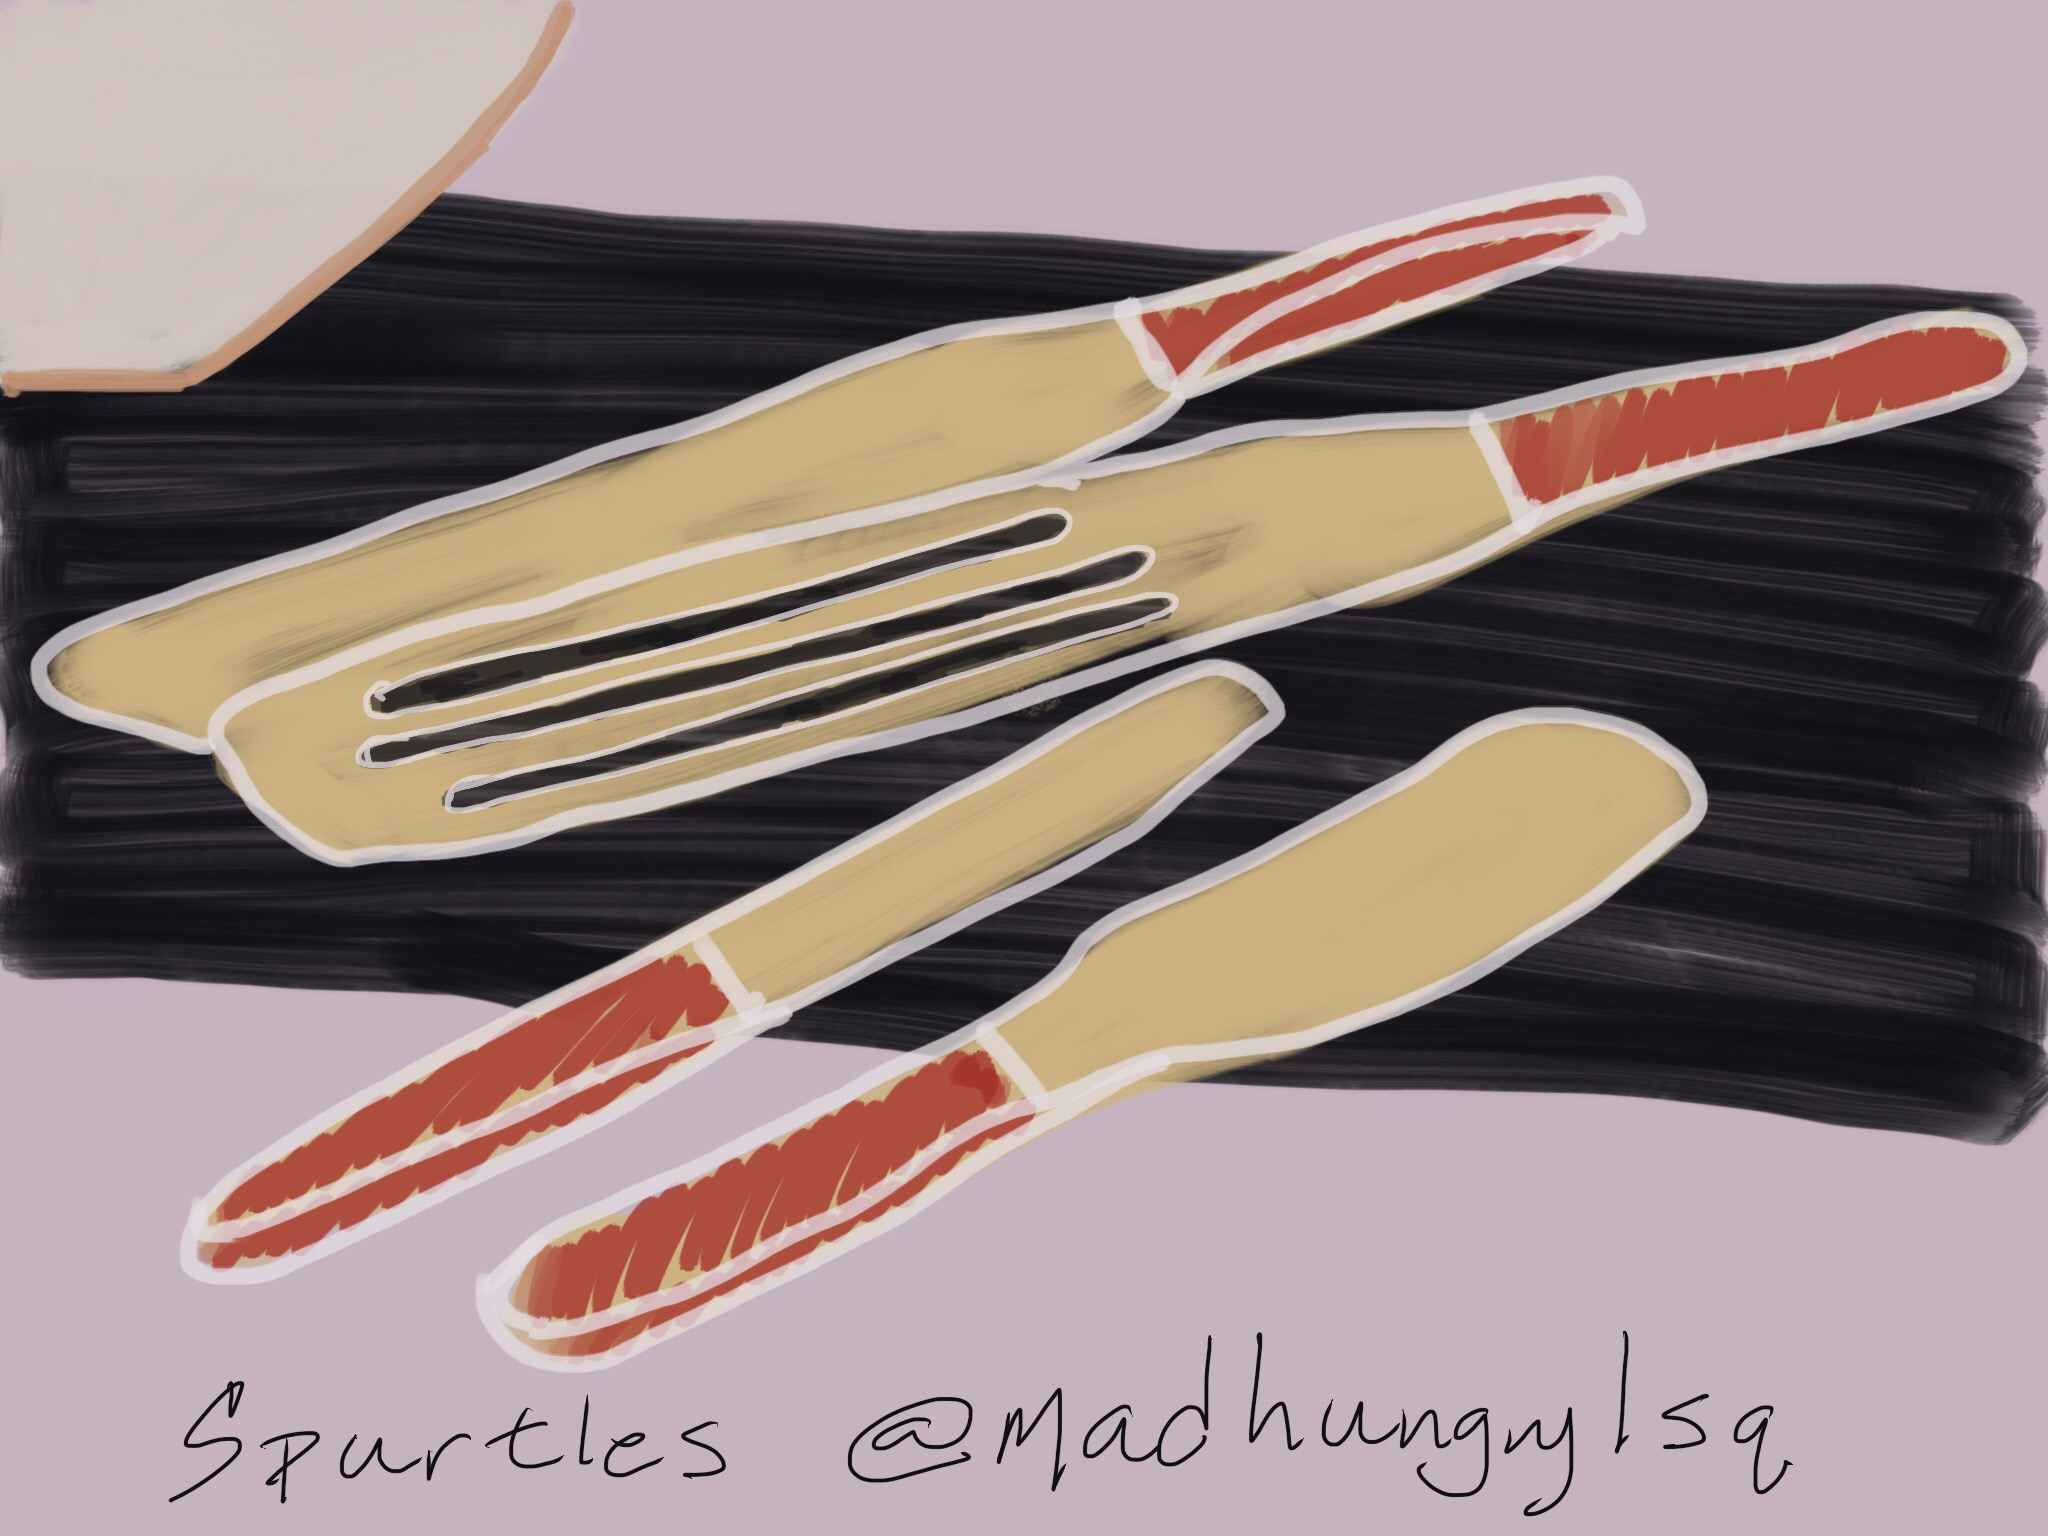 Spurtle drawing by Christine Chang Hanway